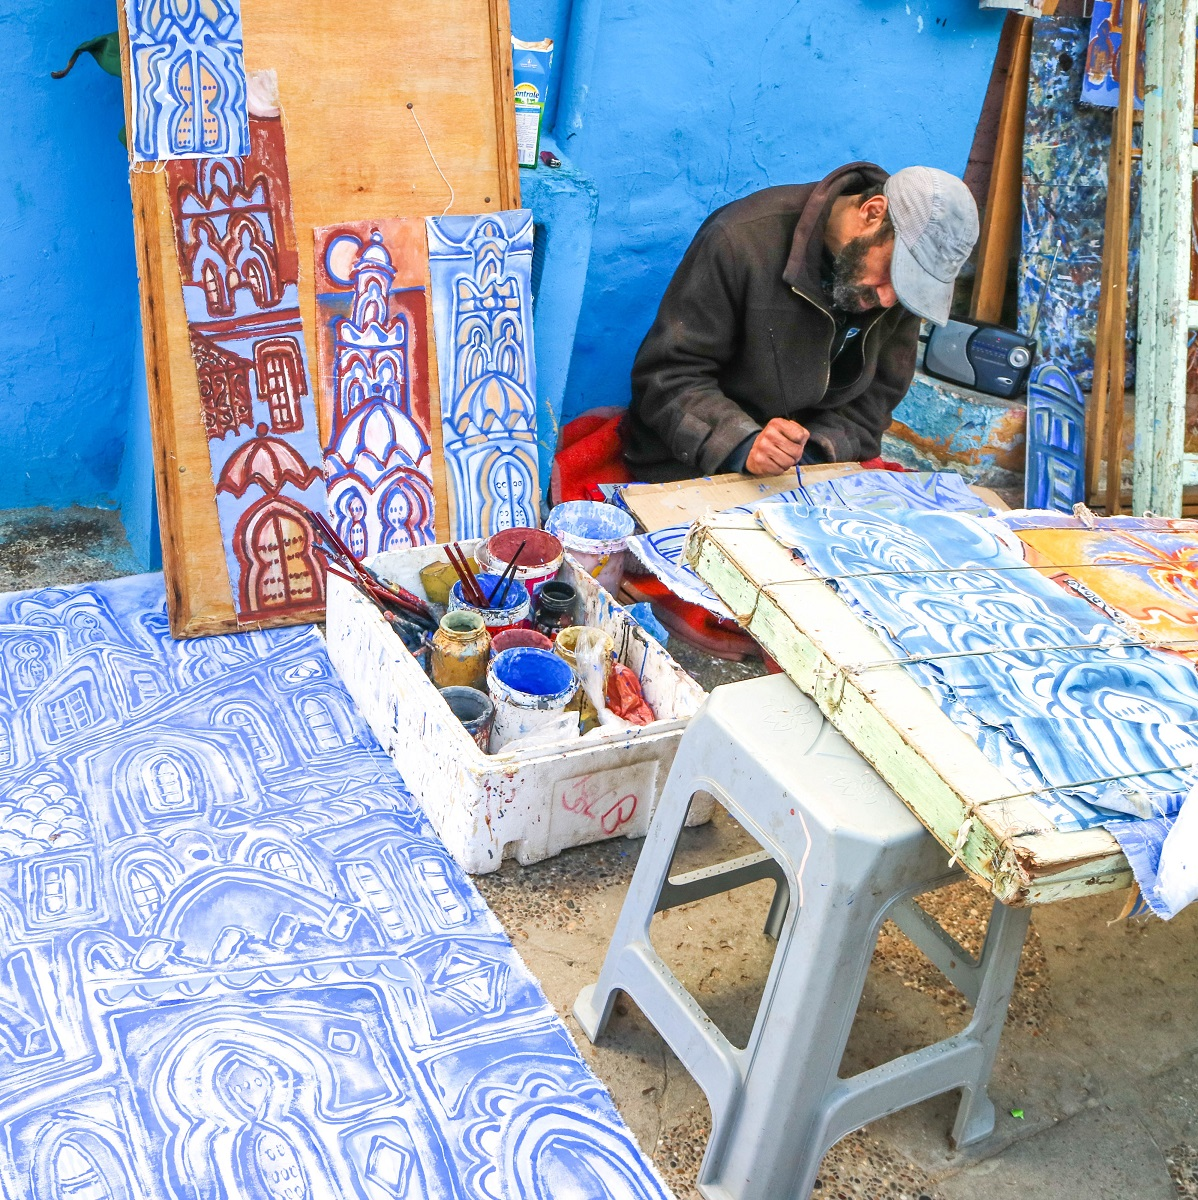 Tangier, Morocco Travel Guide: Day Trip to Asilah - this beautiful, coastal town is popular among artists, and just a walk through the old town makes it clear as to why.